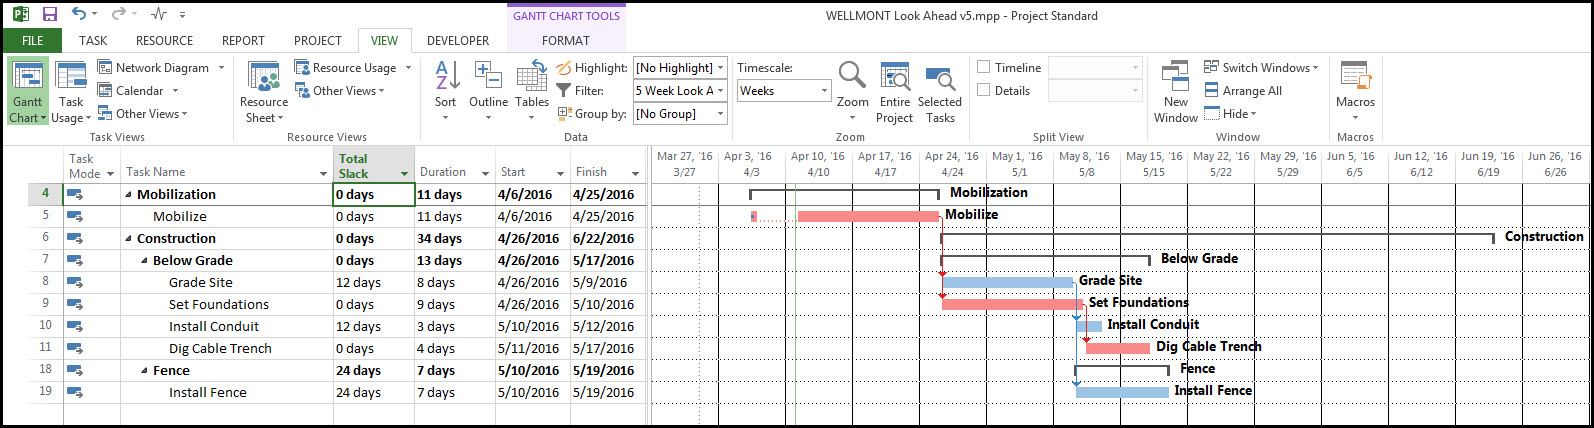 Microsoft Project Look Ahead Filter Fig 16